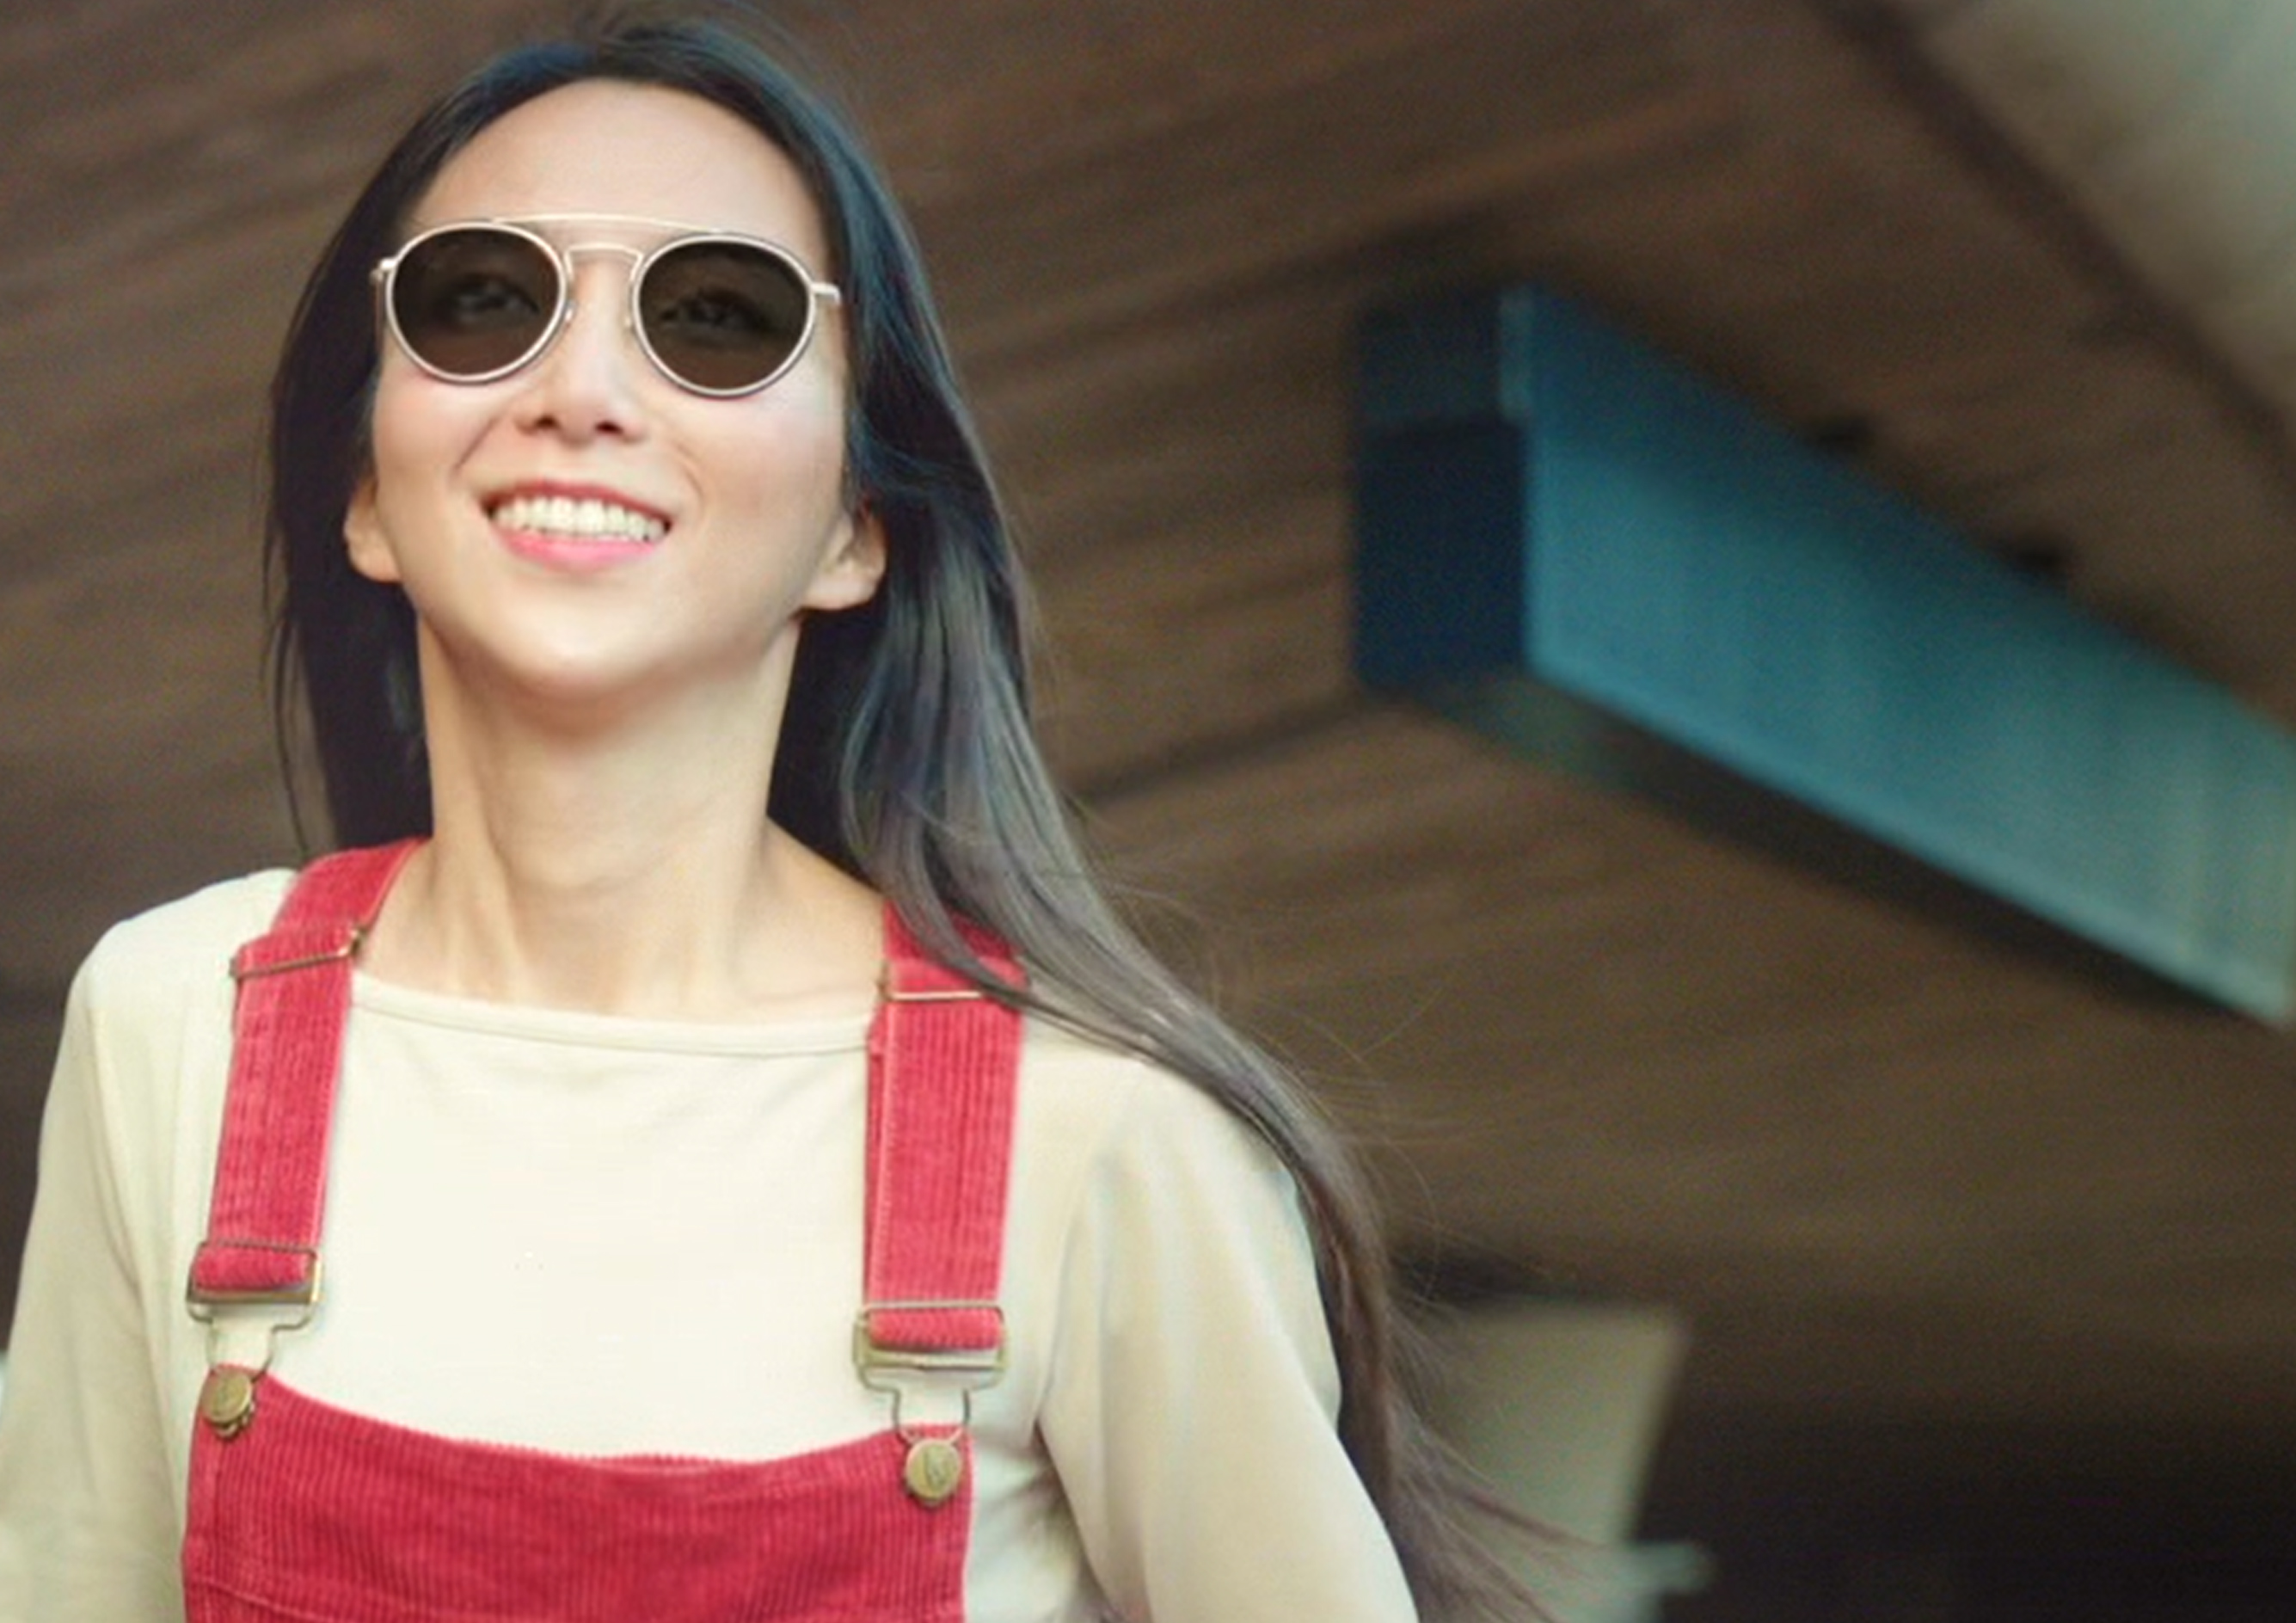 Young asian woman wearing glasses with Transition lenses